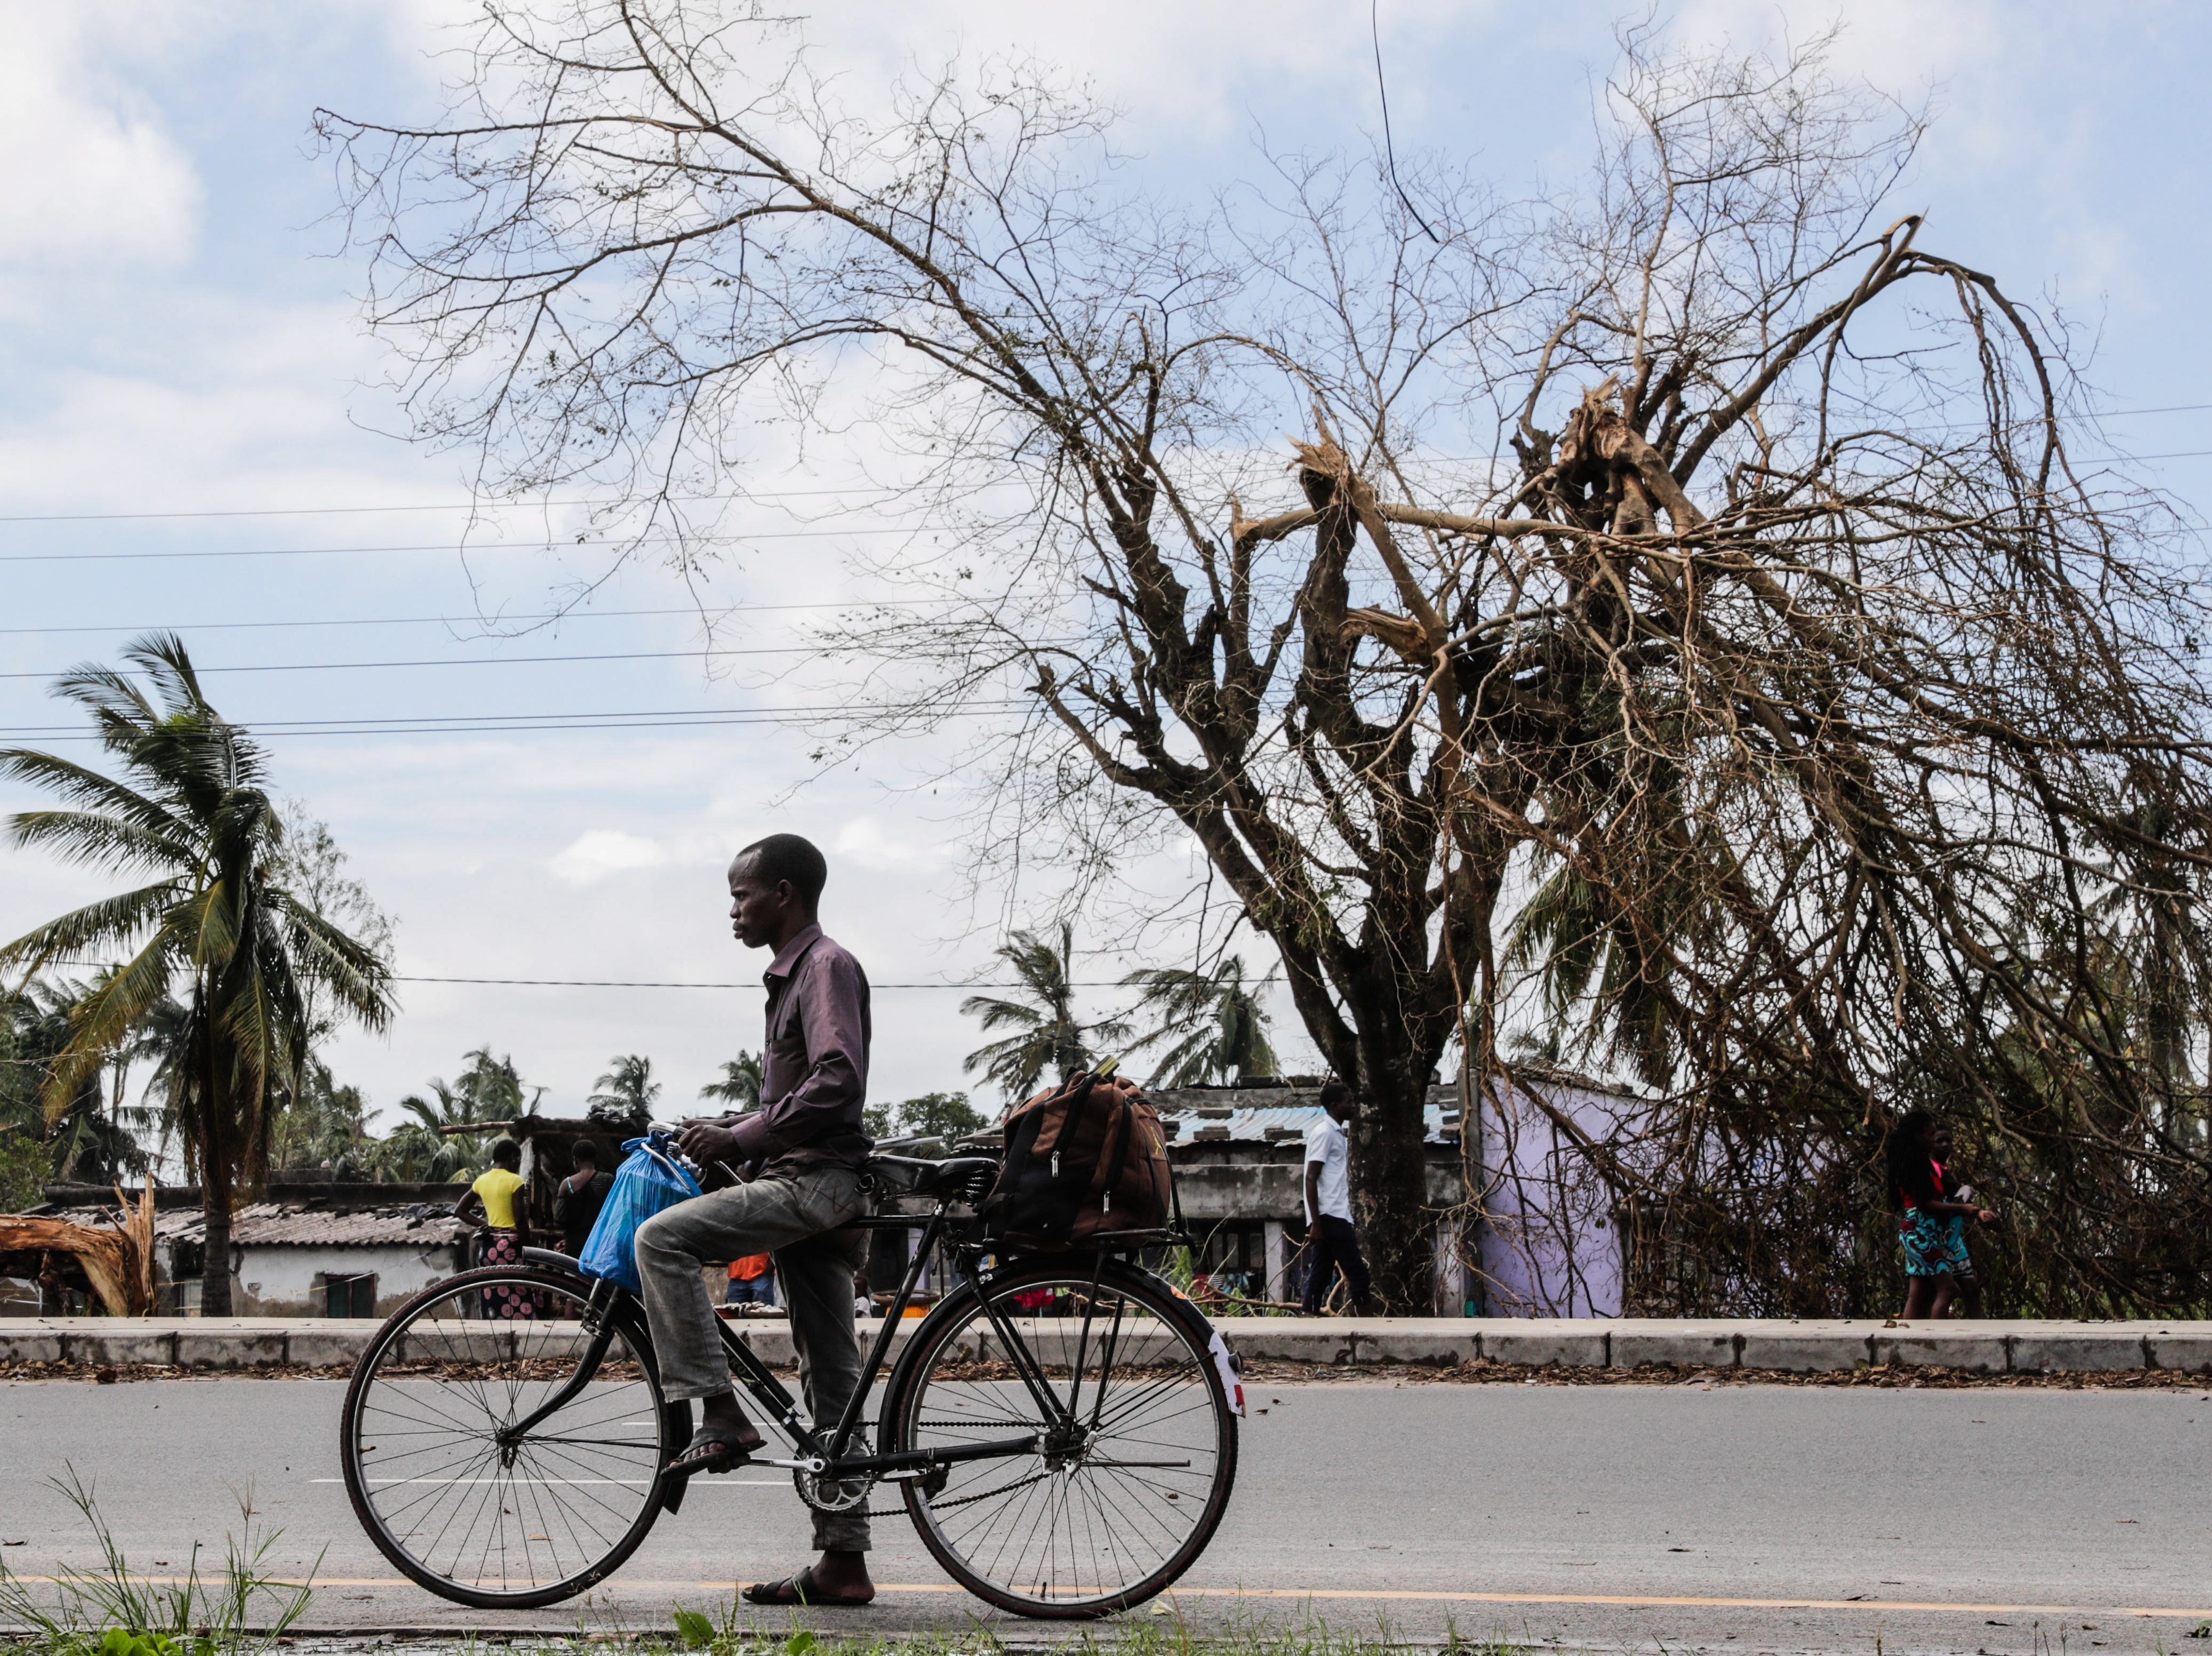 A man rides his bicycle down a road filled with destroyed trees after Cyclone Idai in Beira City, central Mozambique, on March 21, 2019.